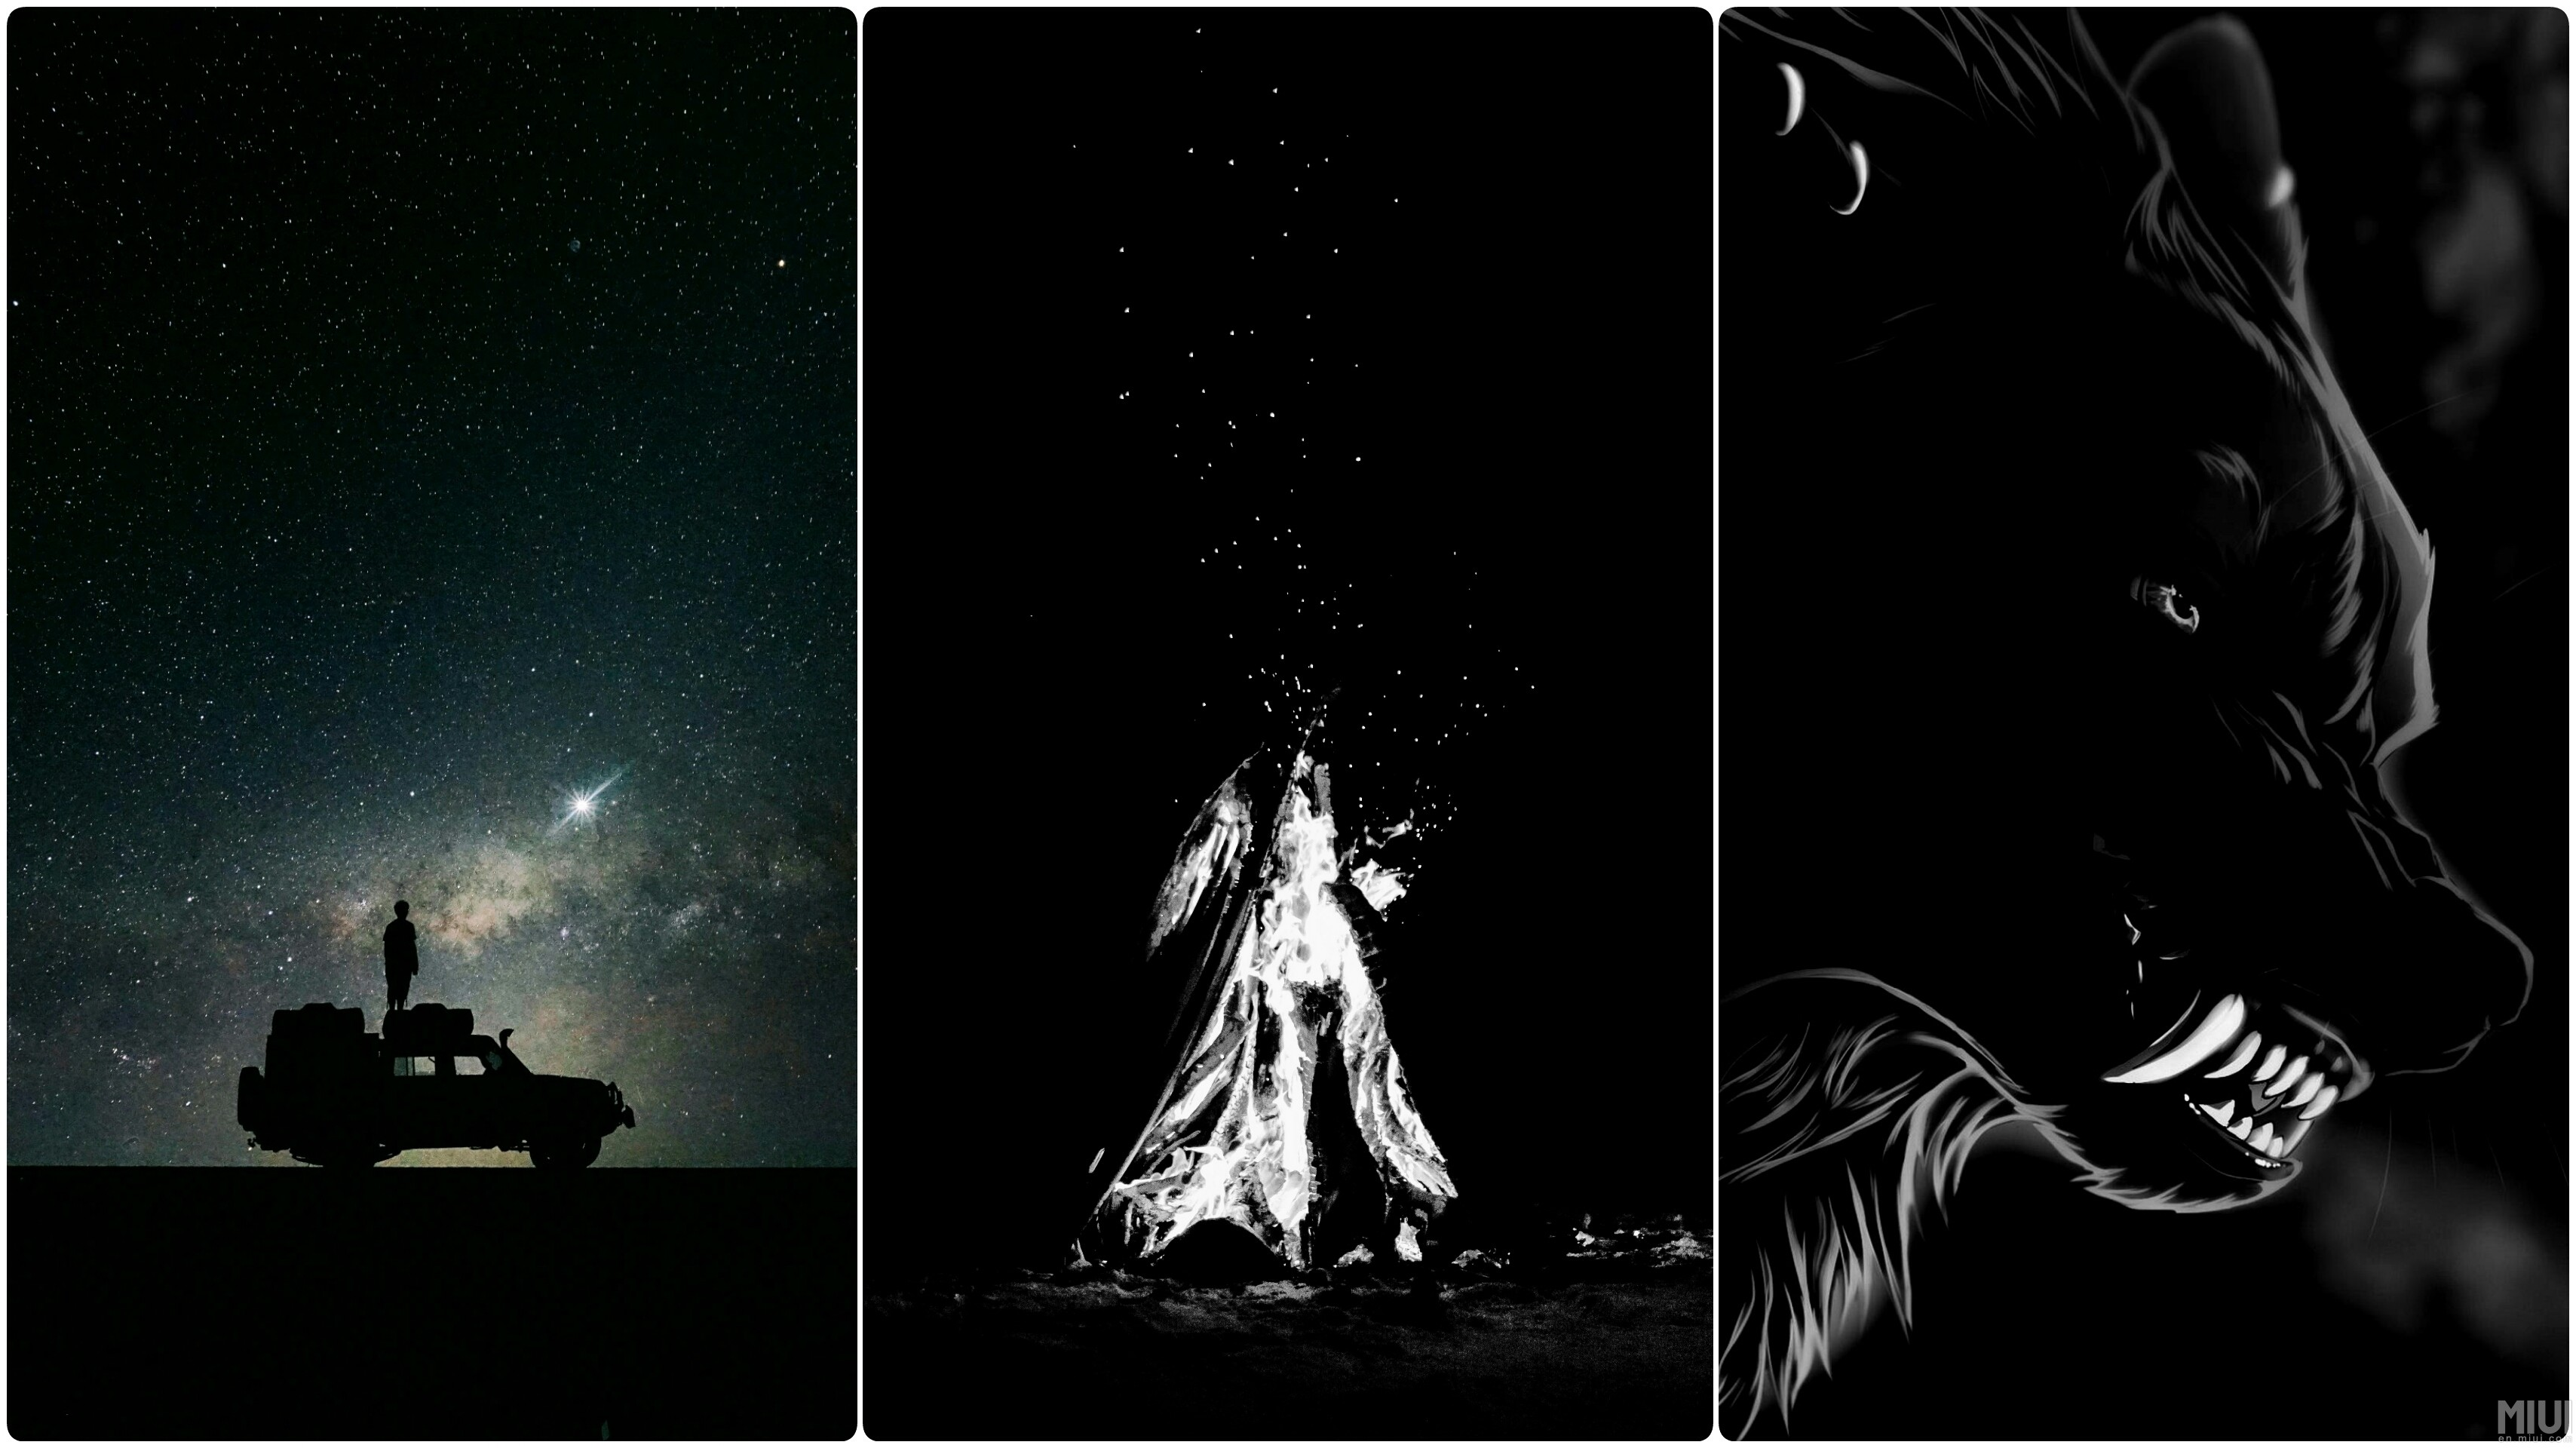 3416x1920 Click here to download the black wallpaper collection